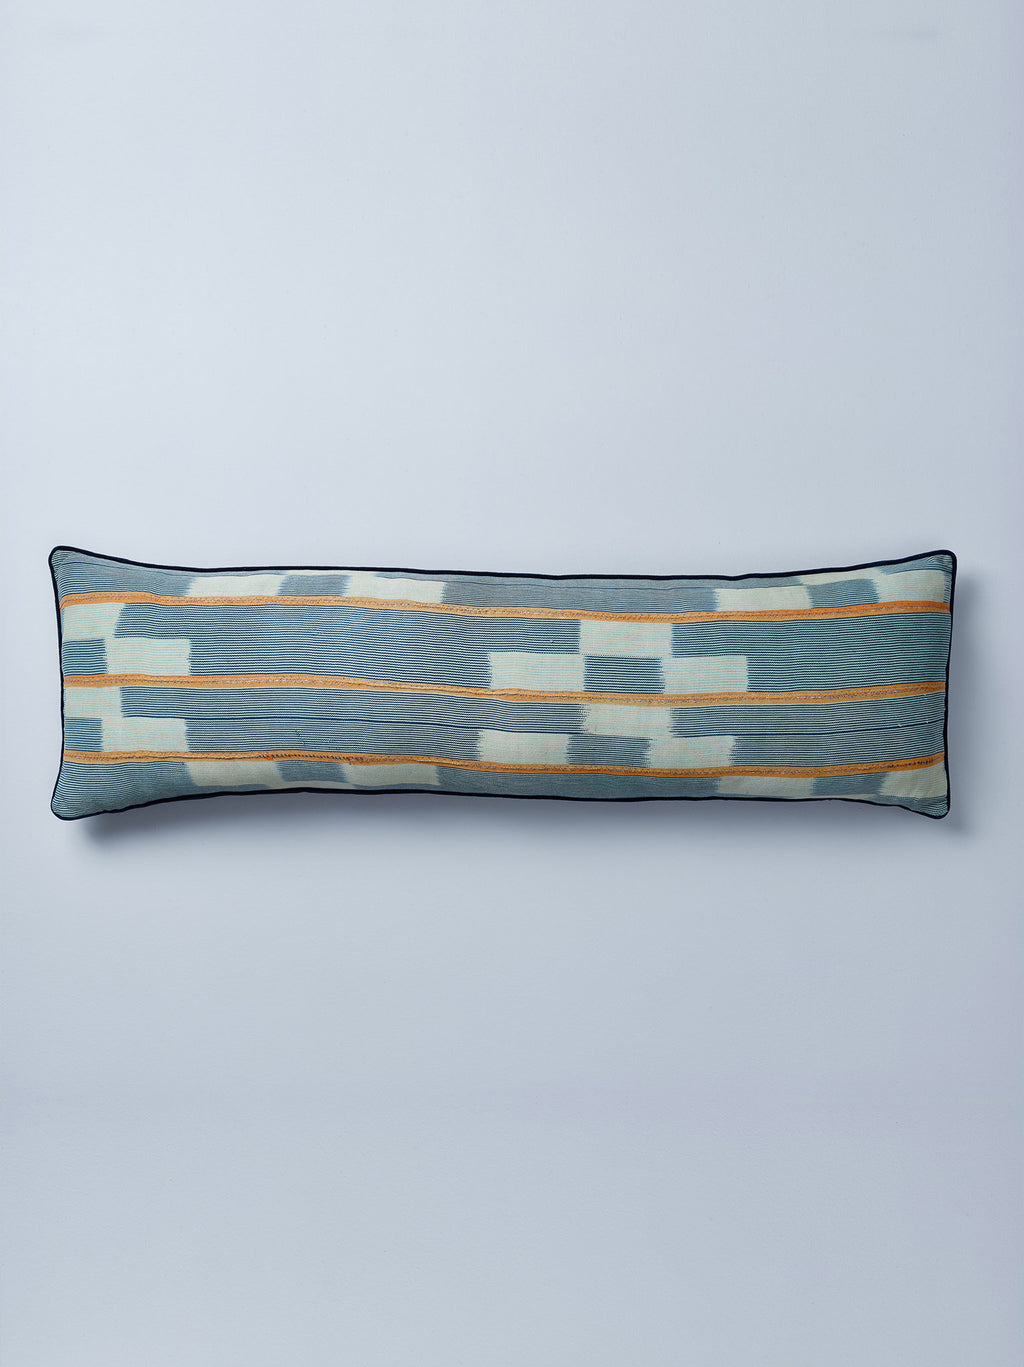 baulé ikat cushions by nomad design